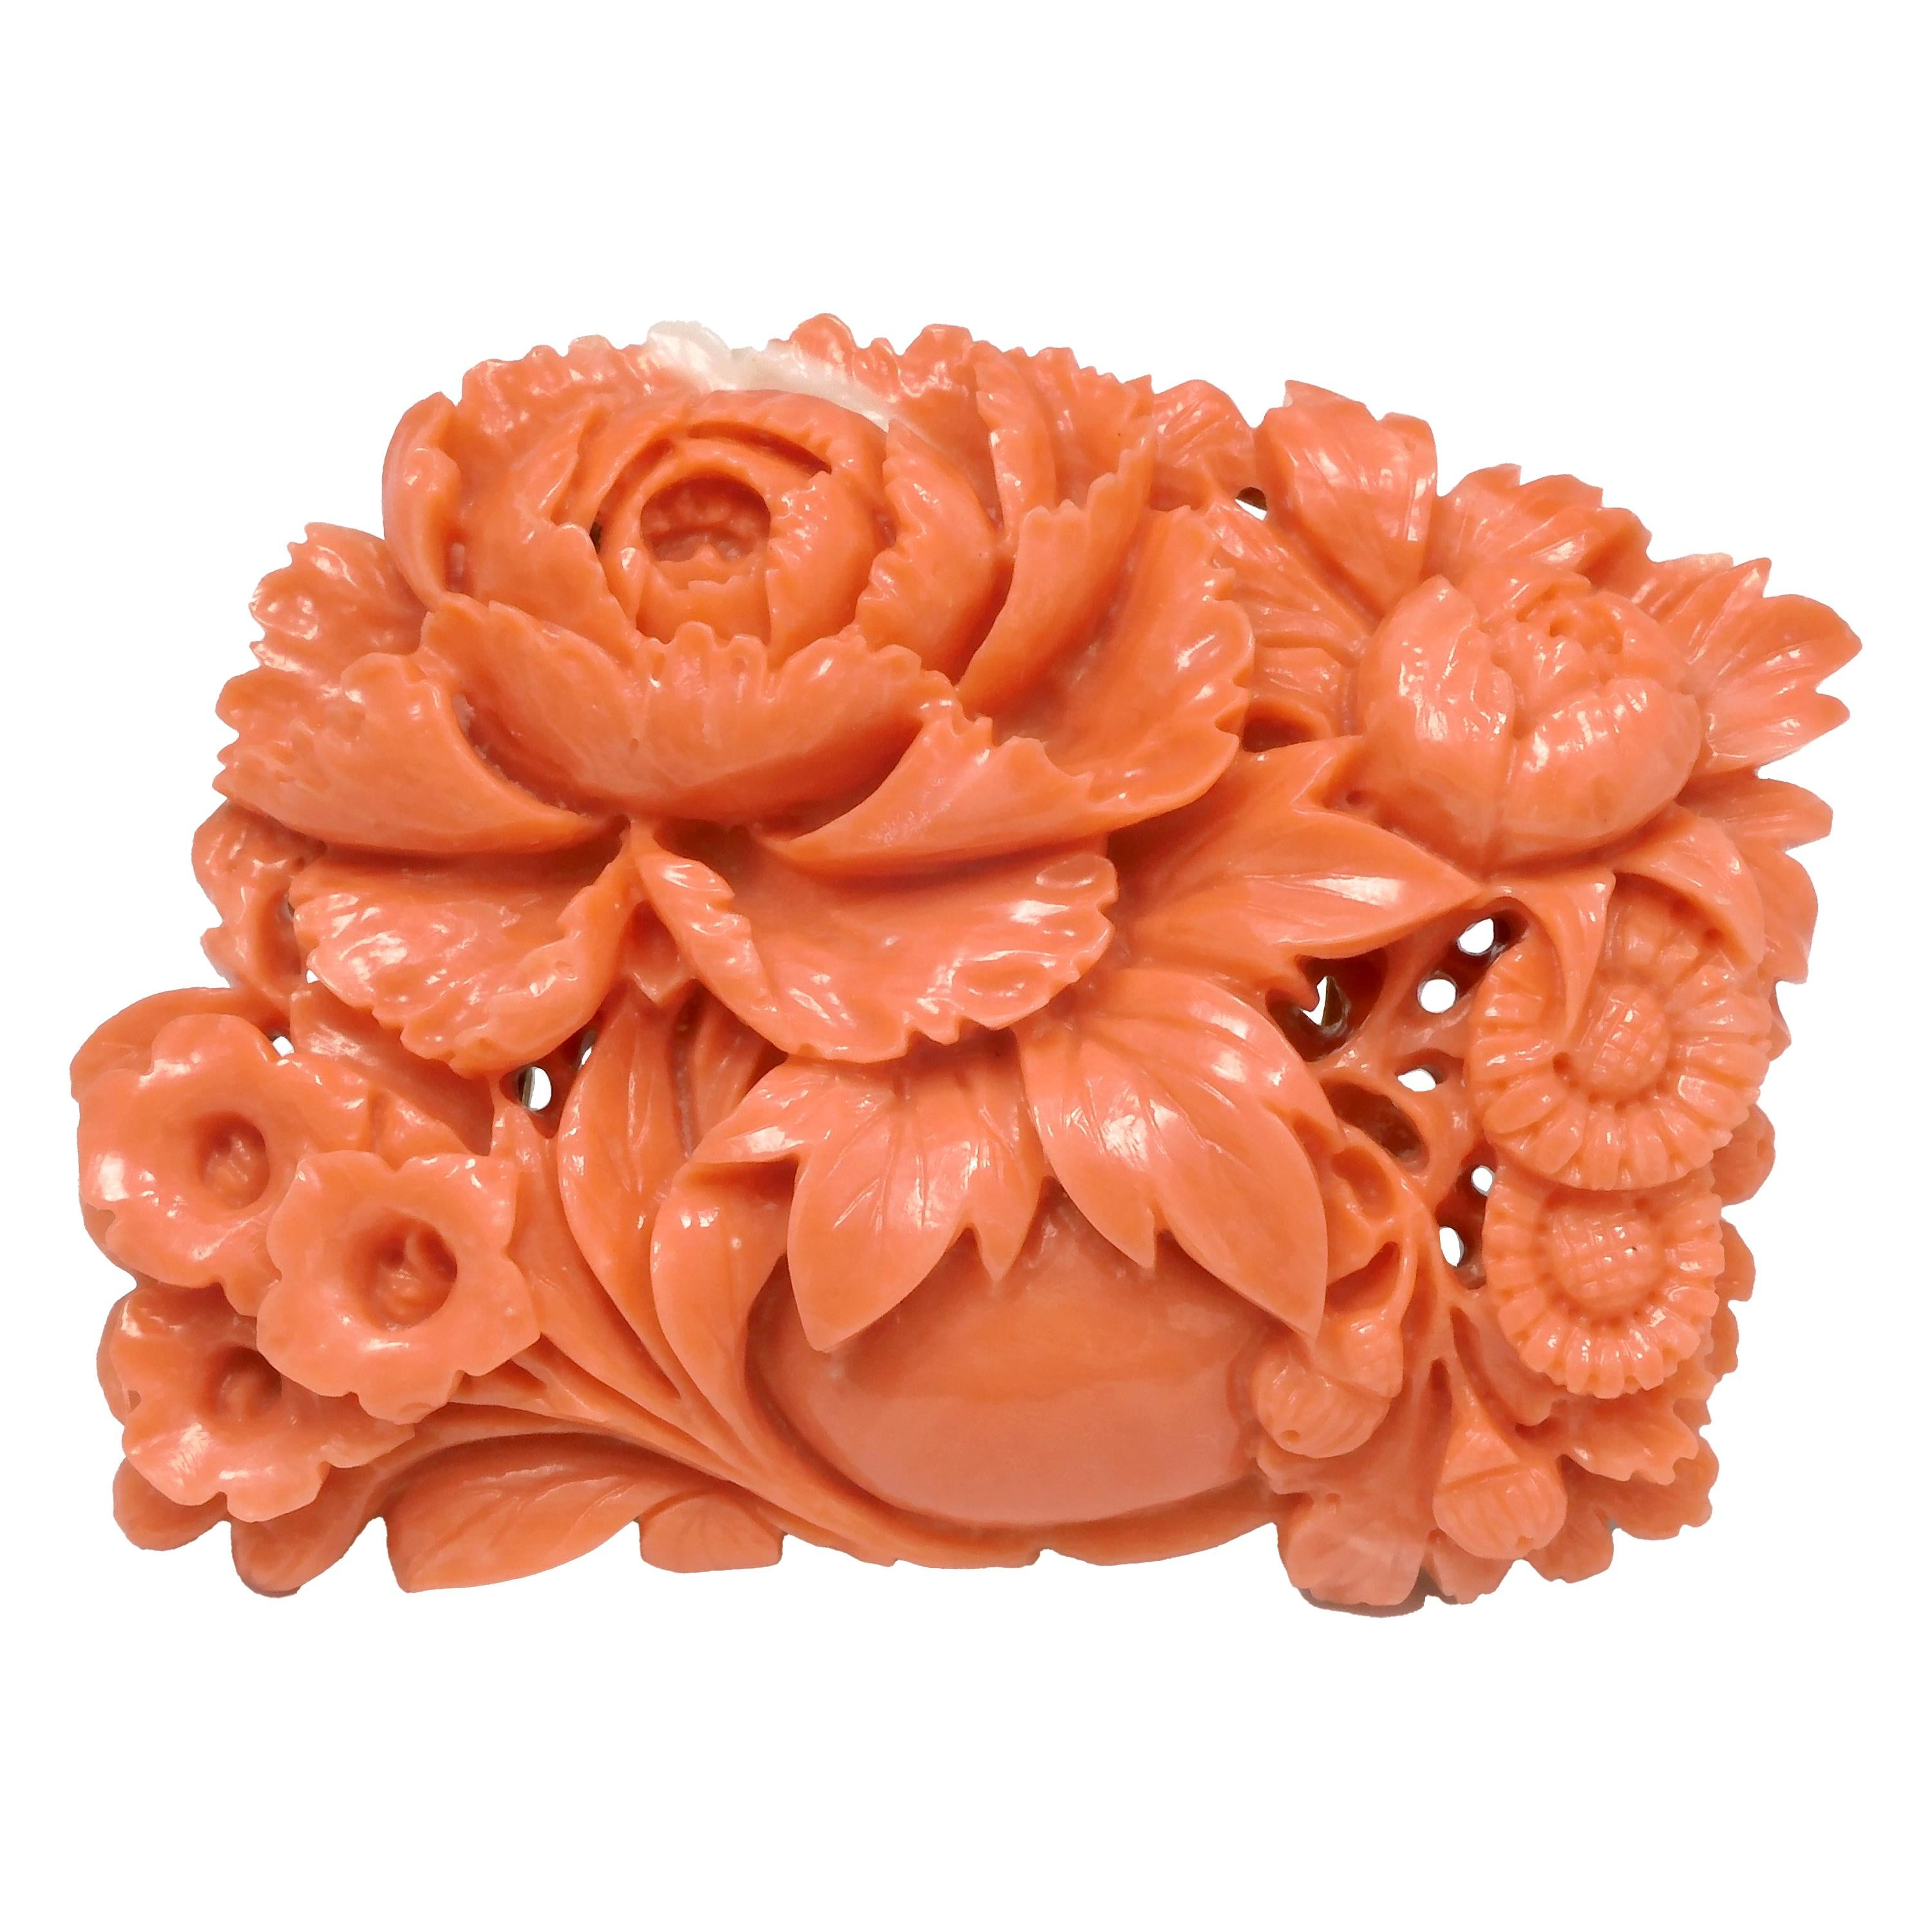 18 Karat Yellow Gold Carved Flower Brooch Crafted with Momoiro Sango Coral